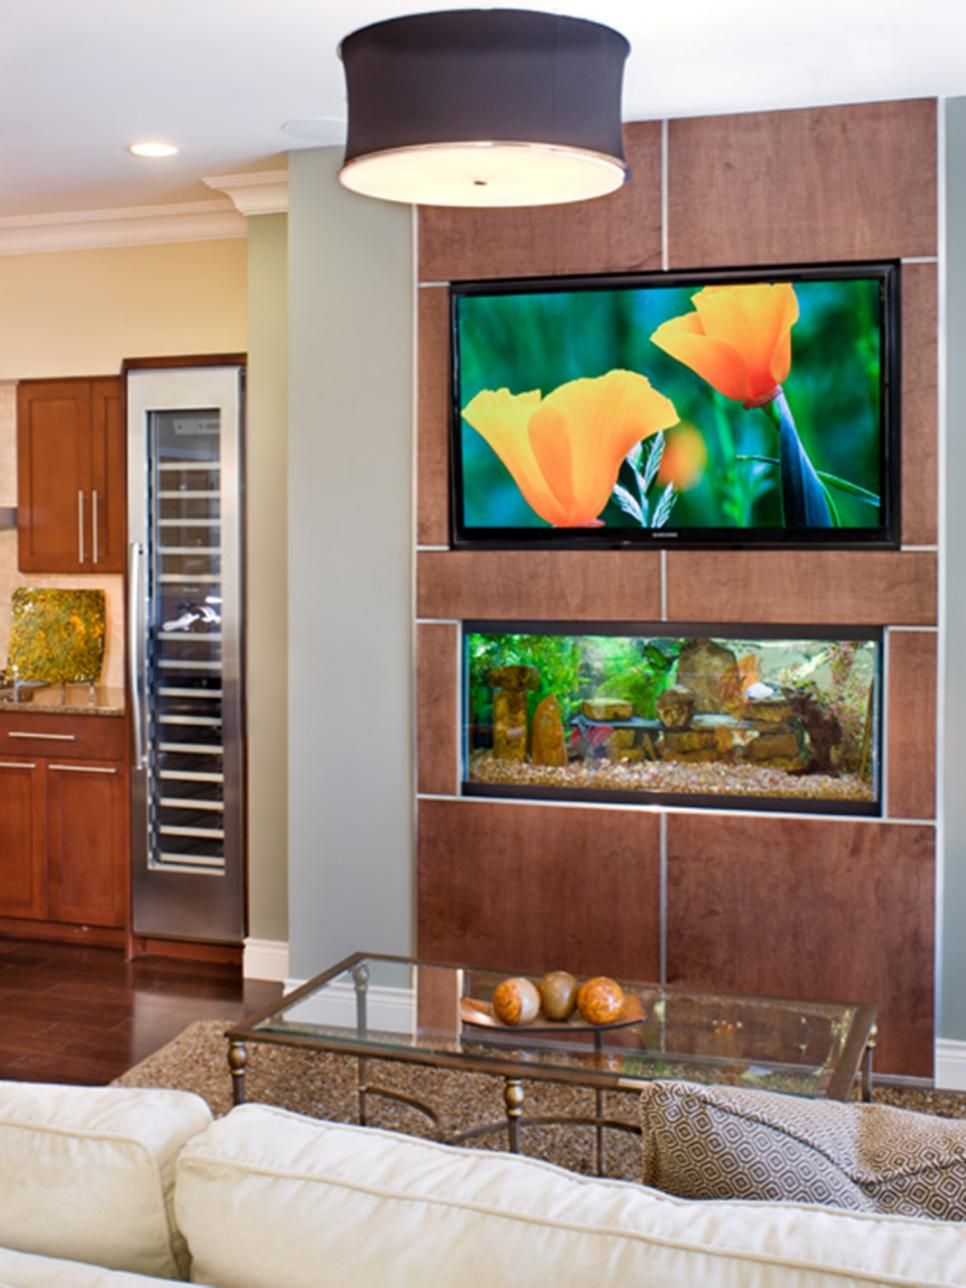 In a whimsical move, an inset fish tank was custom